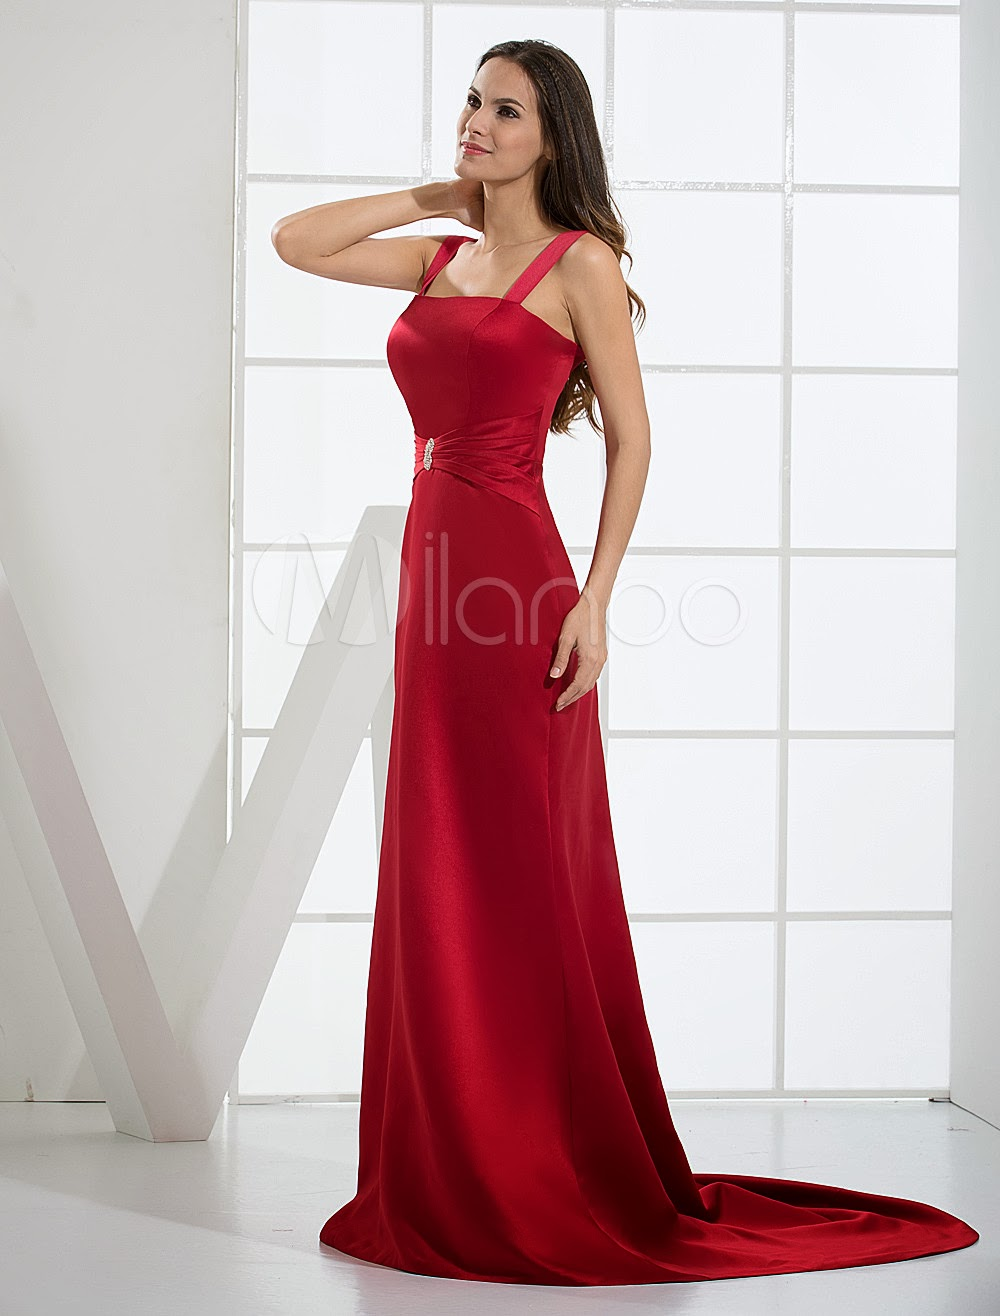 China Wholesale Dresses - Burgundy Spaghetti Satin Evening Dress